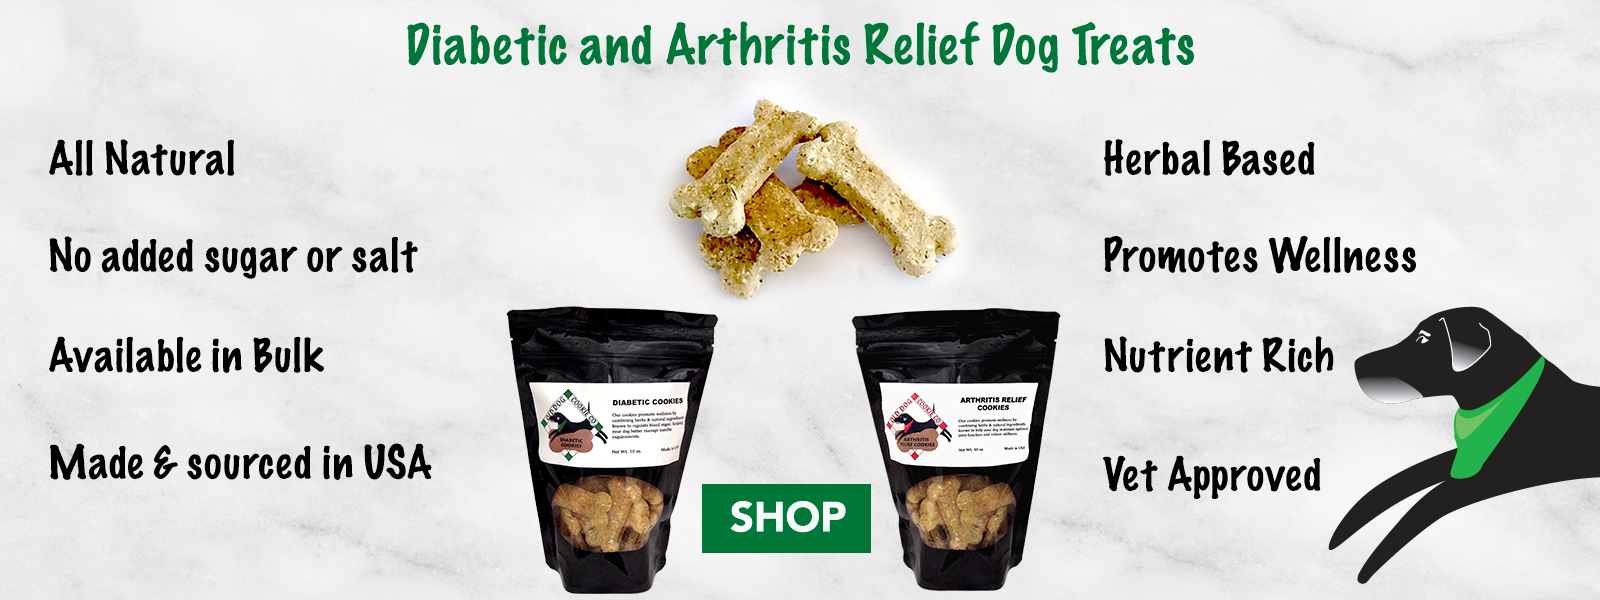 Old Dog Cookie Co Diabetic Dog Treats And Arthritis Relief Dog Treats